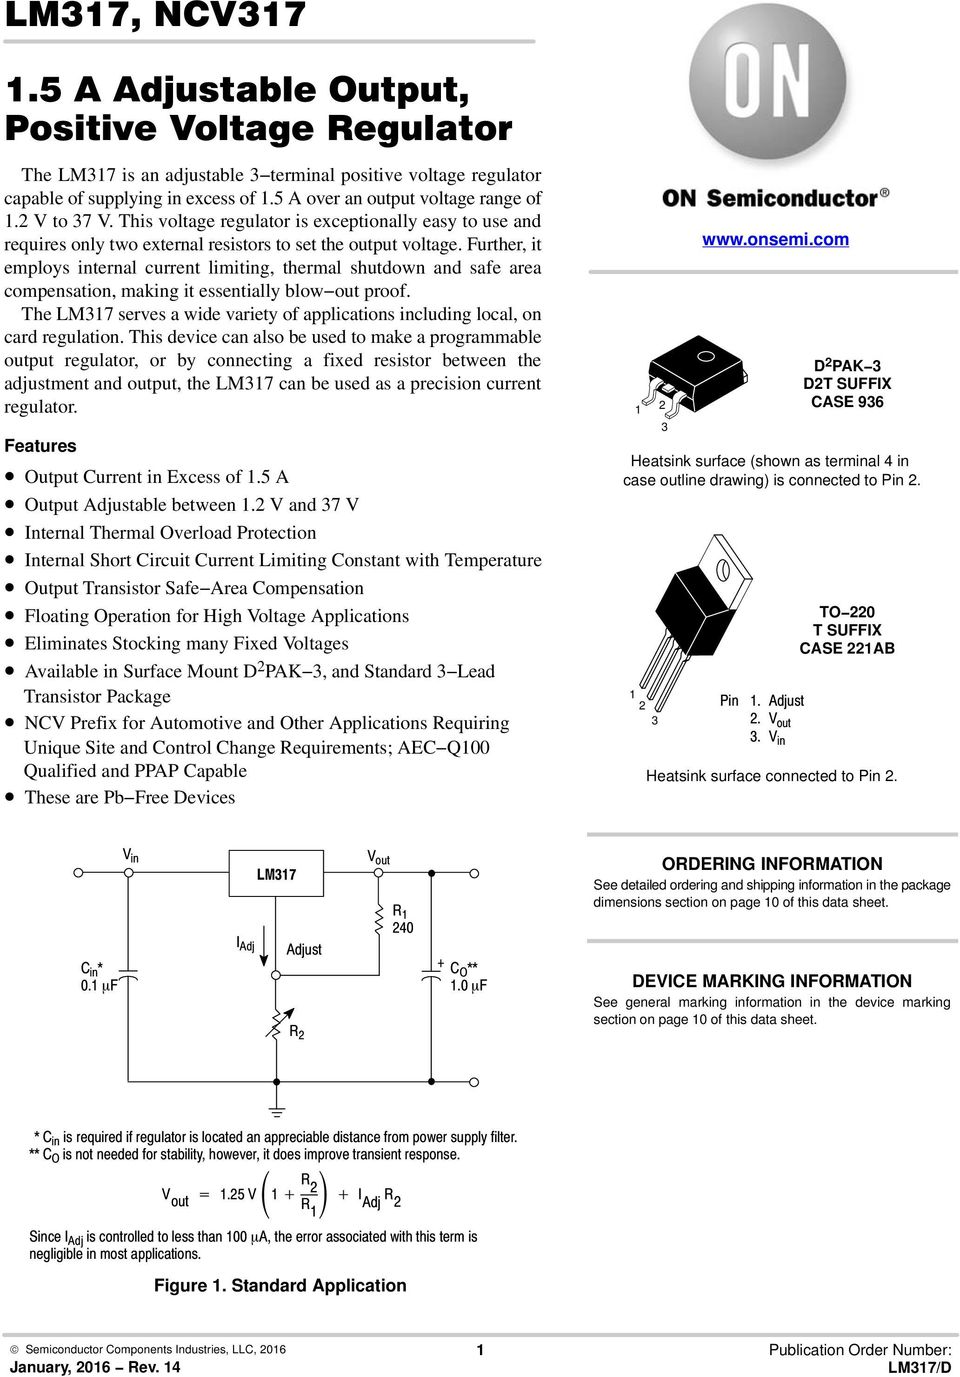 Lm317 Ncv A Adjustable Output Positive Voltage Regulator Pdf Current Source With Further It Employs Internal Limiting Thermal Shutdown And Safe Area Compensation Making